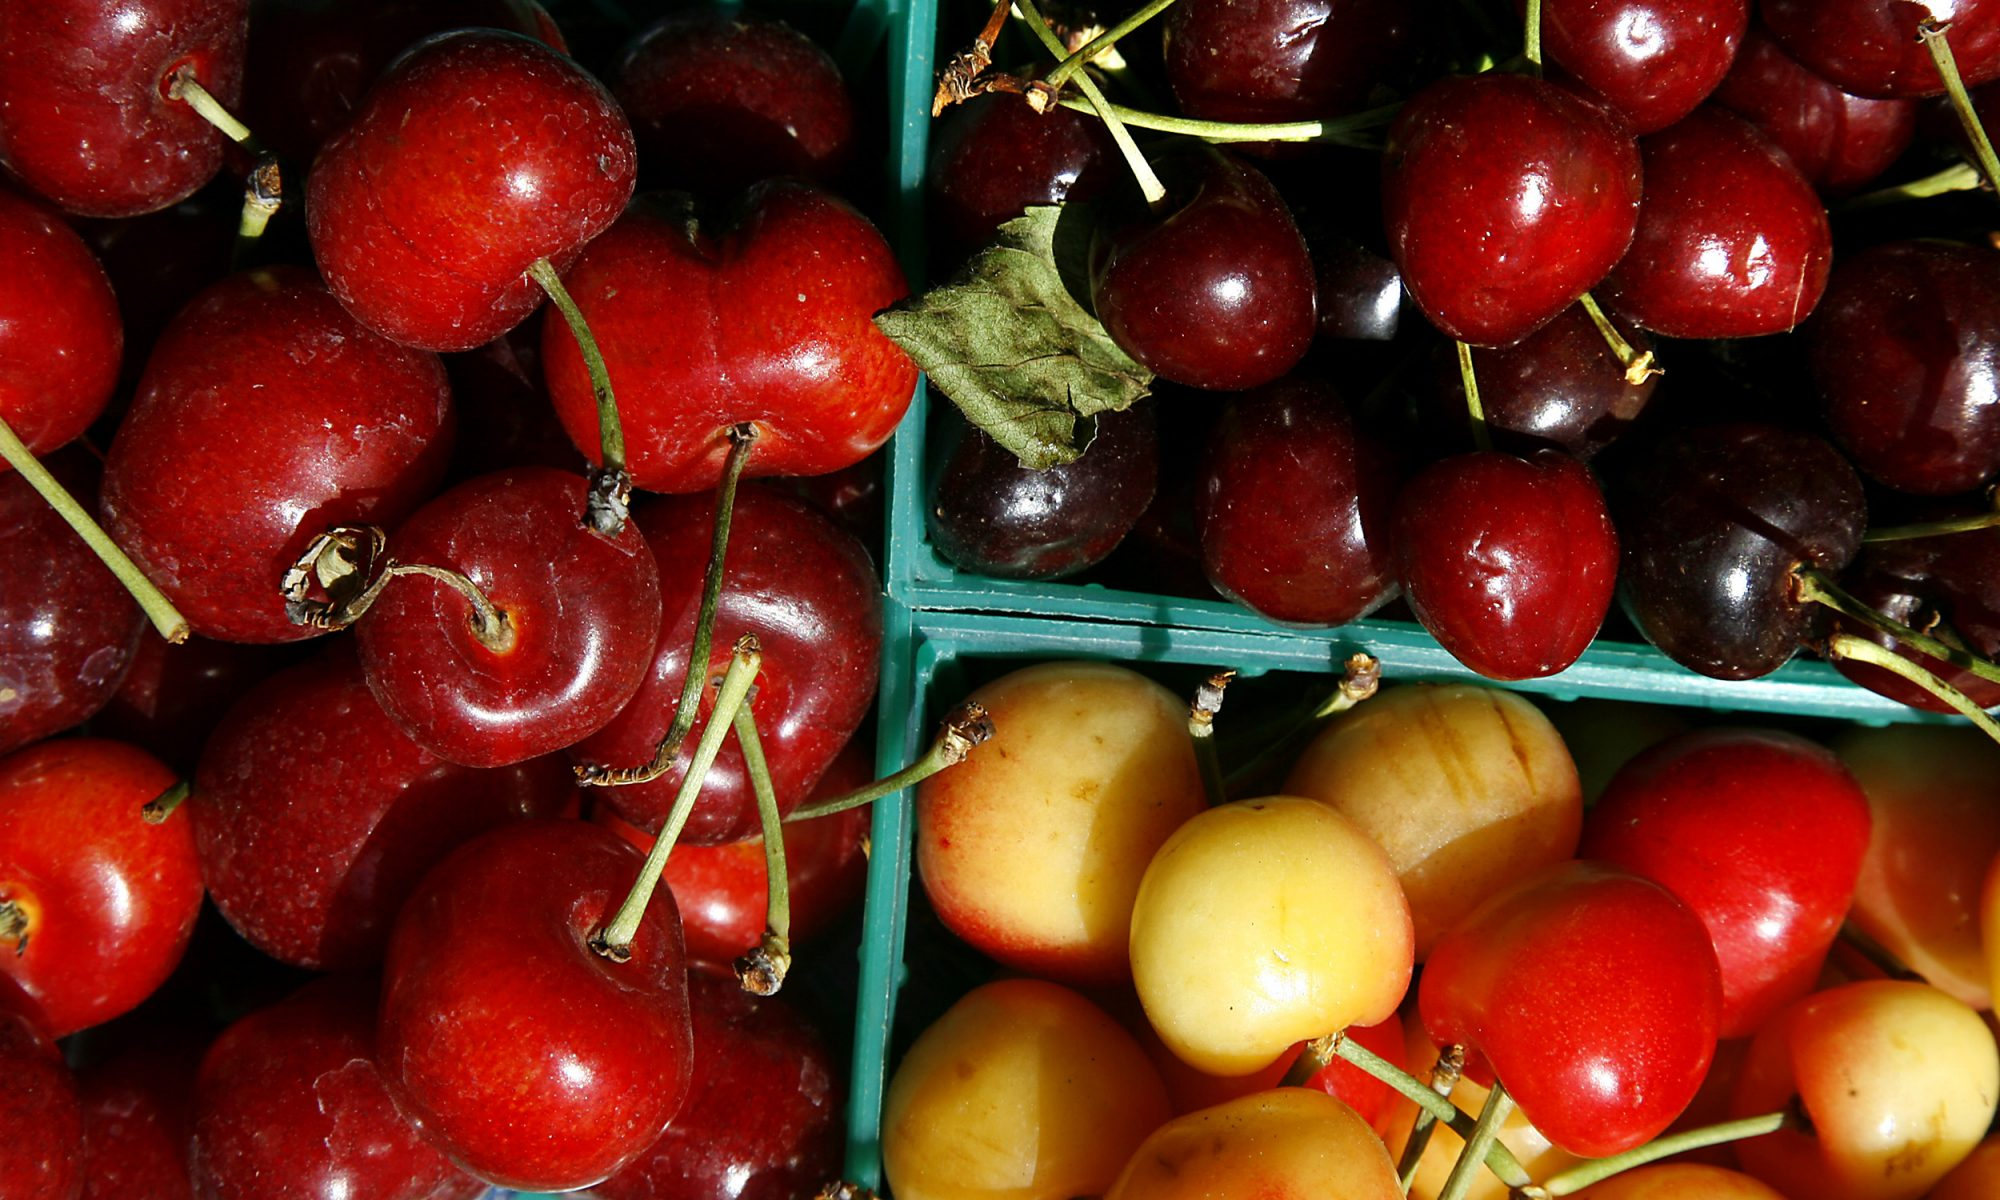 EC: These Are the Kinds of Cherries You'll See for Sale